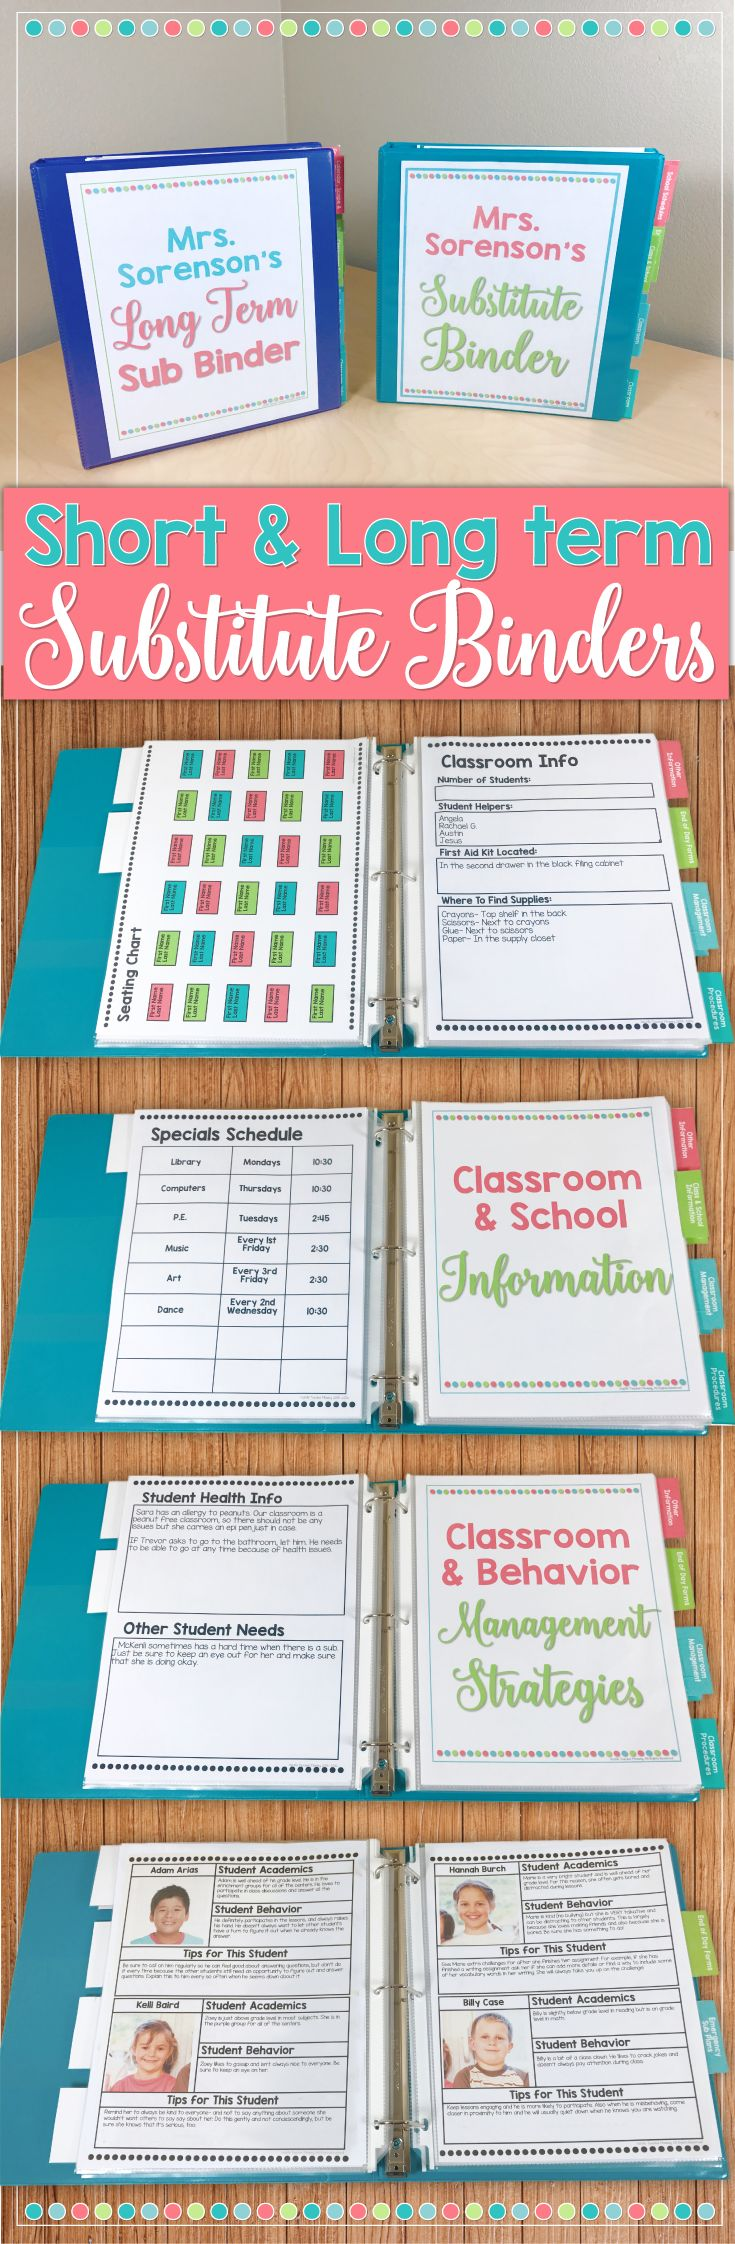 Absolutely EVERYTHING you could possibly need for short & long term absences are included in these editable substitute binders! From classroom management strategies, info forms, editable drag and drop seating charts, classroom tour- and MORE- this has you covered!